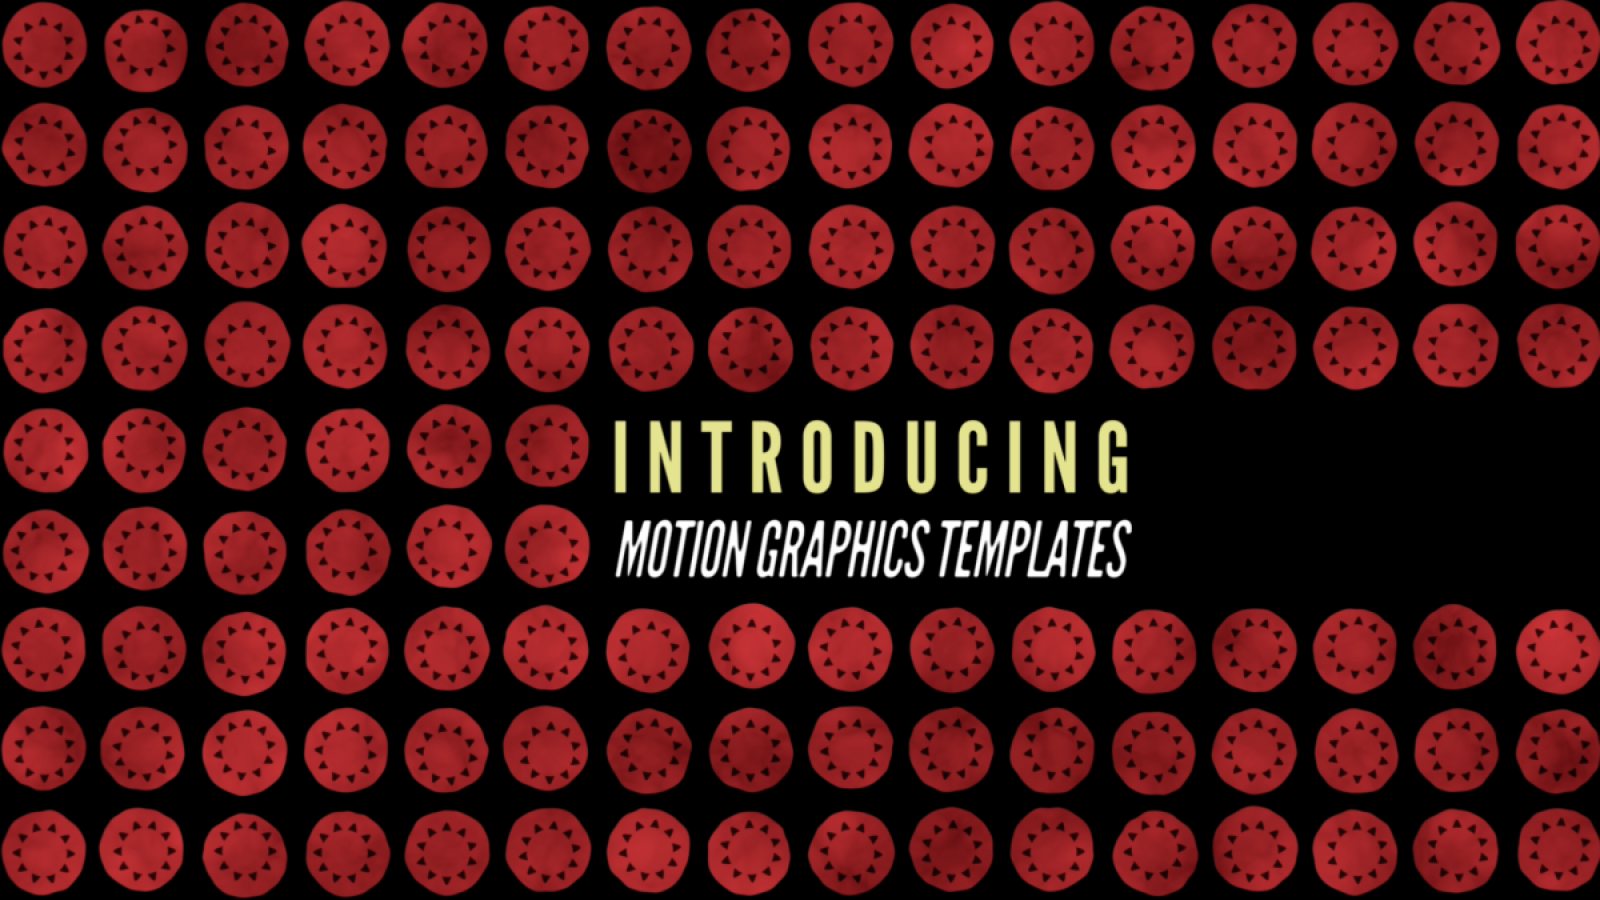 Adobe is introducing Motion Graphics for beginners and professionals